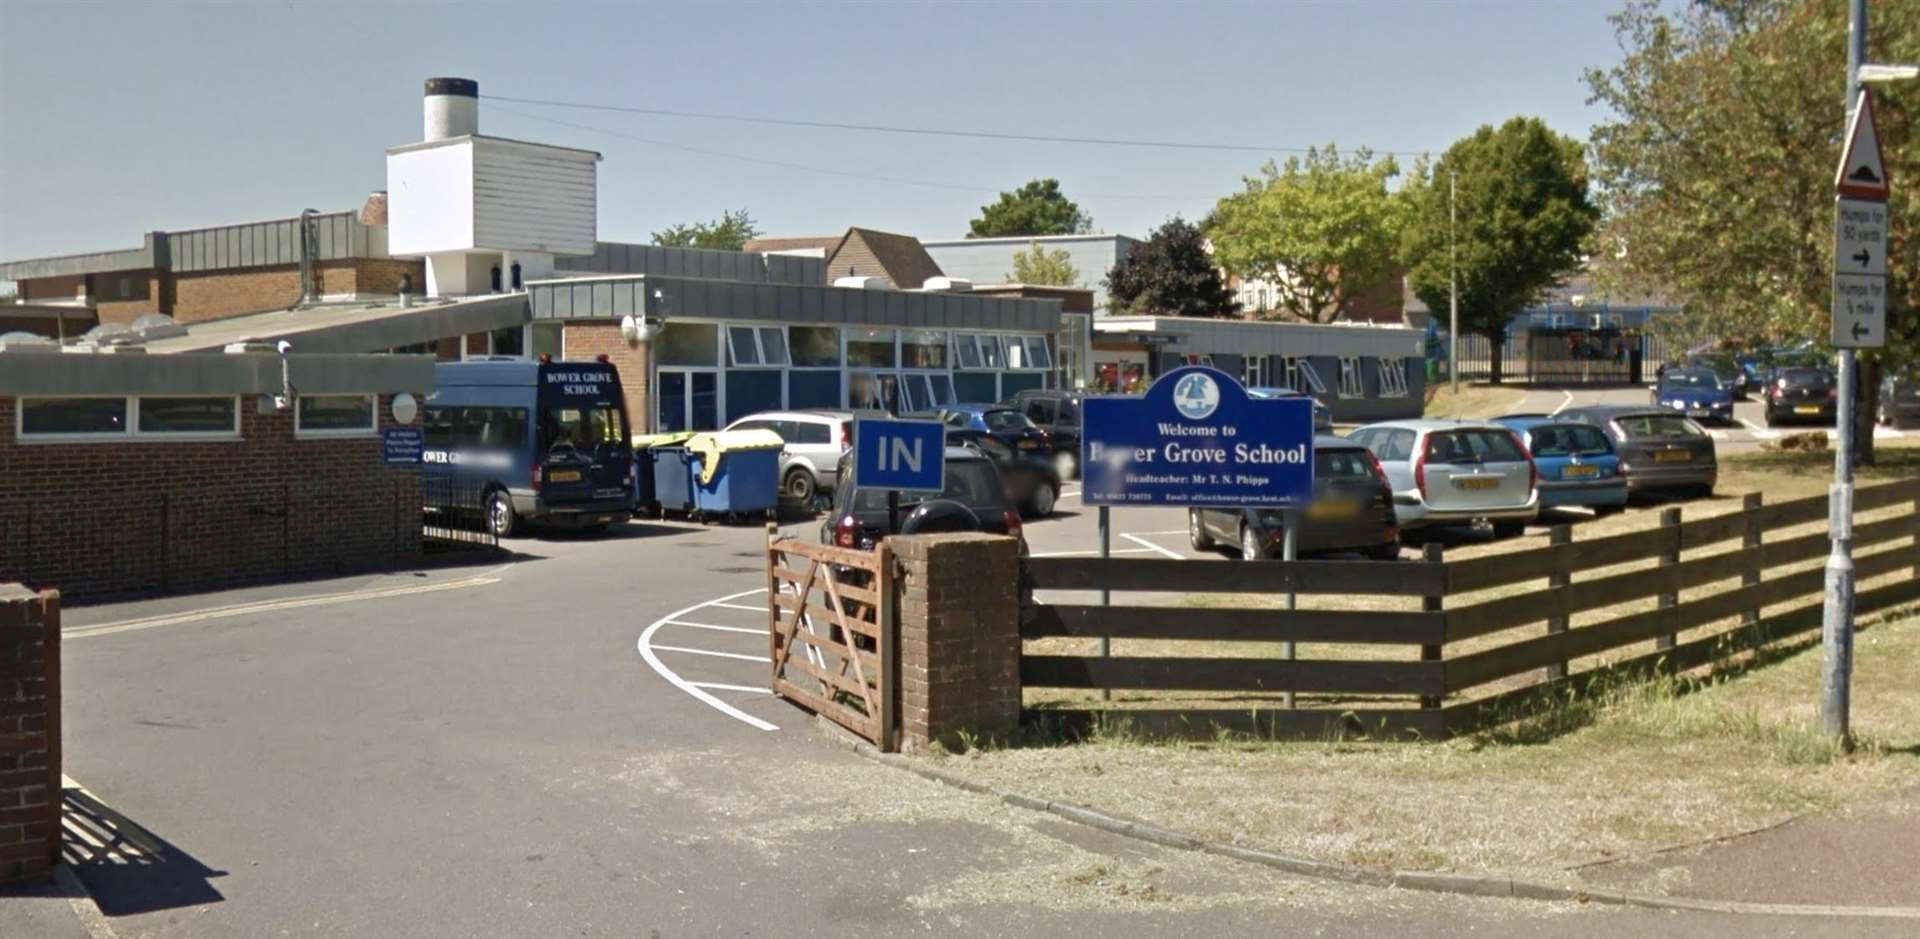 Bower Grove School in Fant Lane, Maidstone. Picture: Google Street View